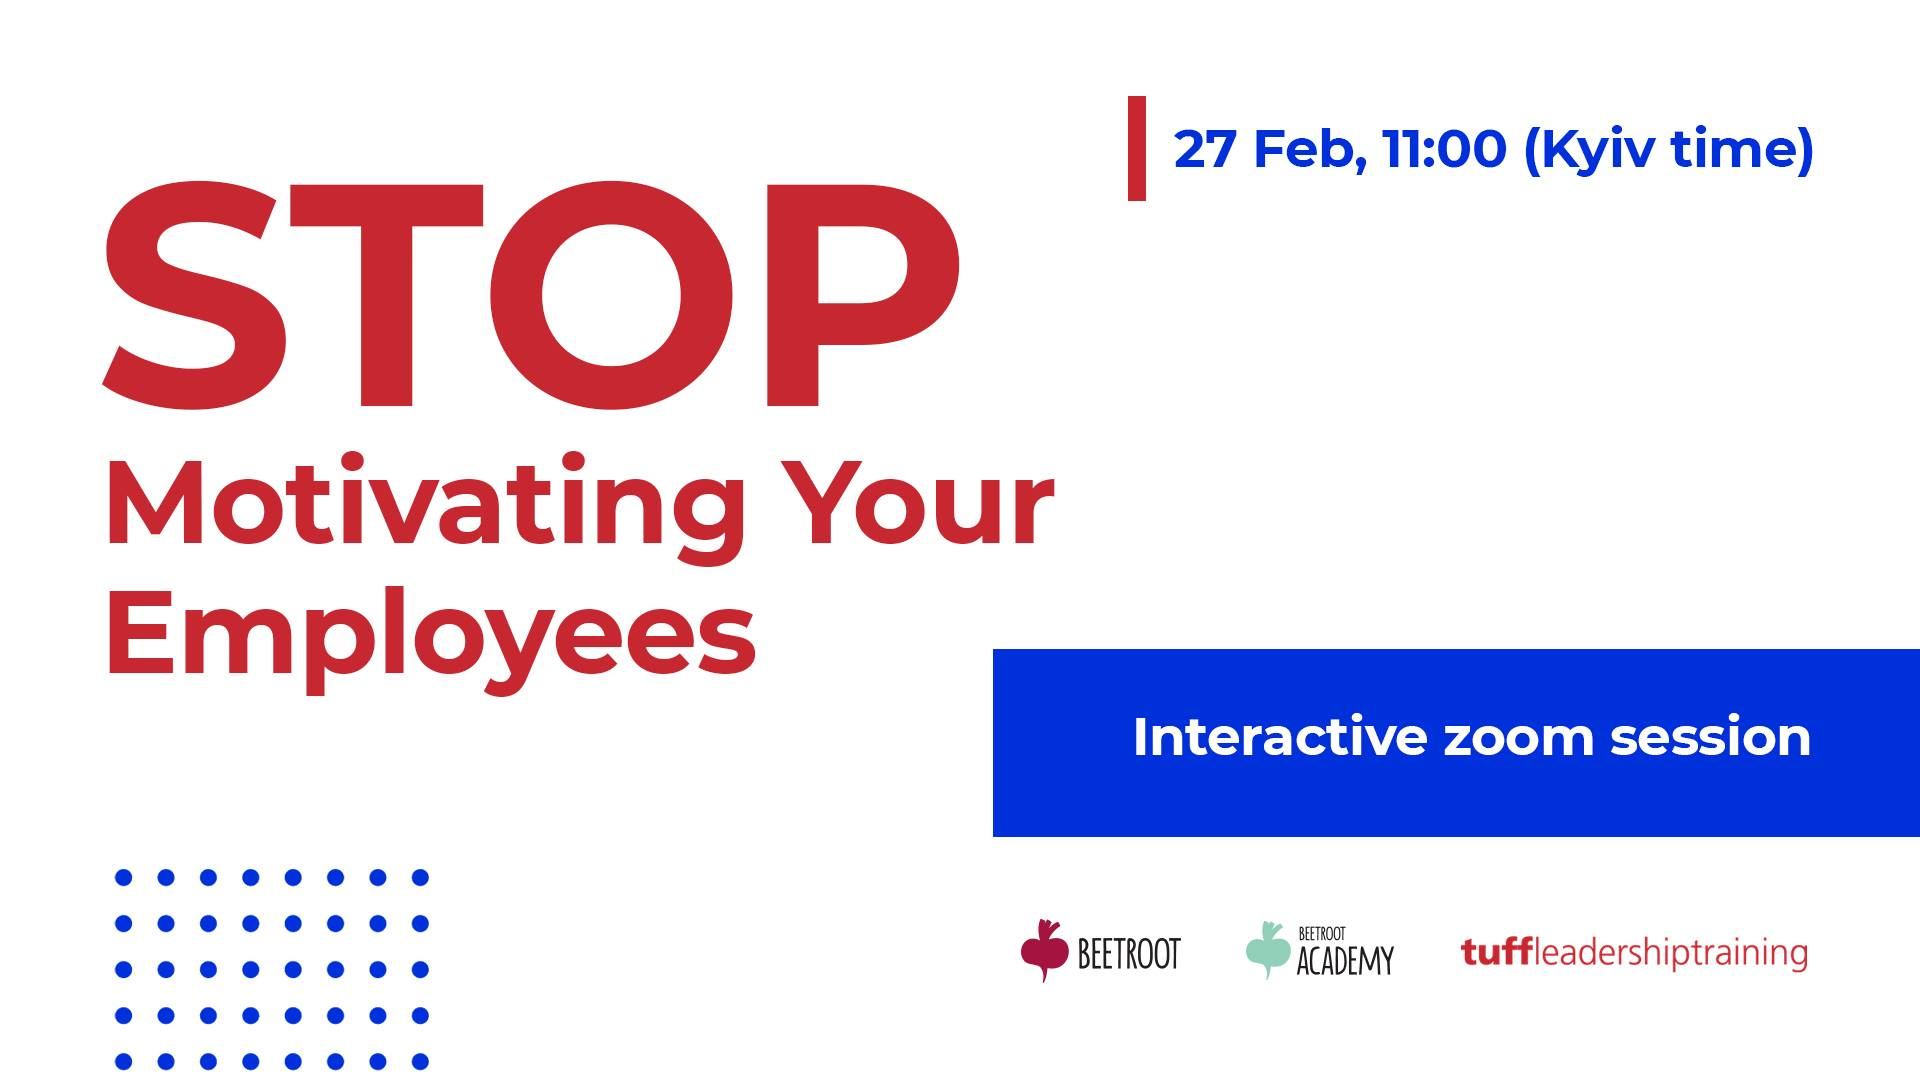 Stop Motivating Your Employees (Interactive Zoom Session)